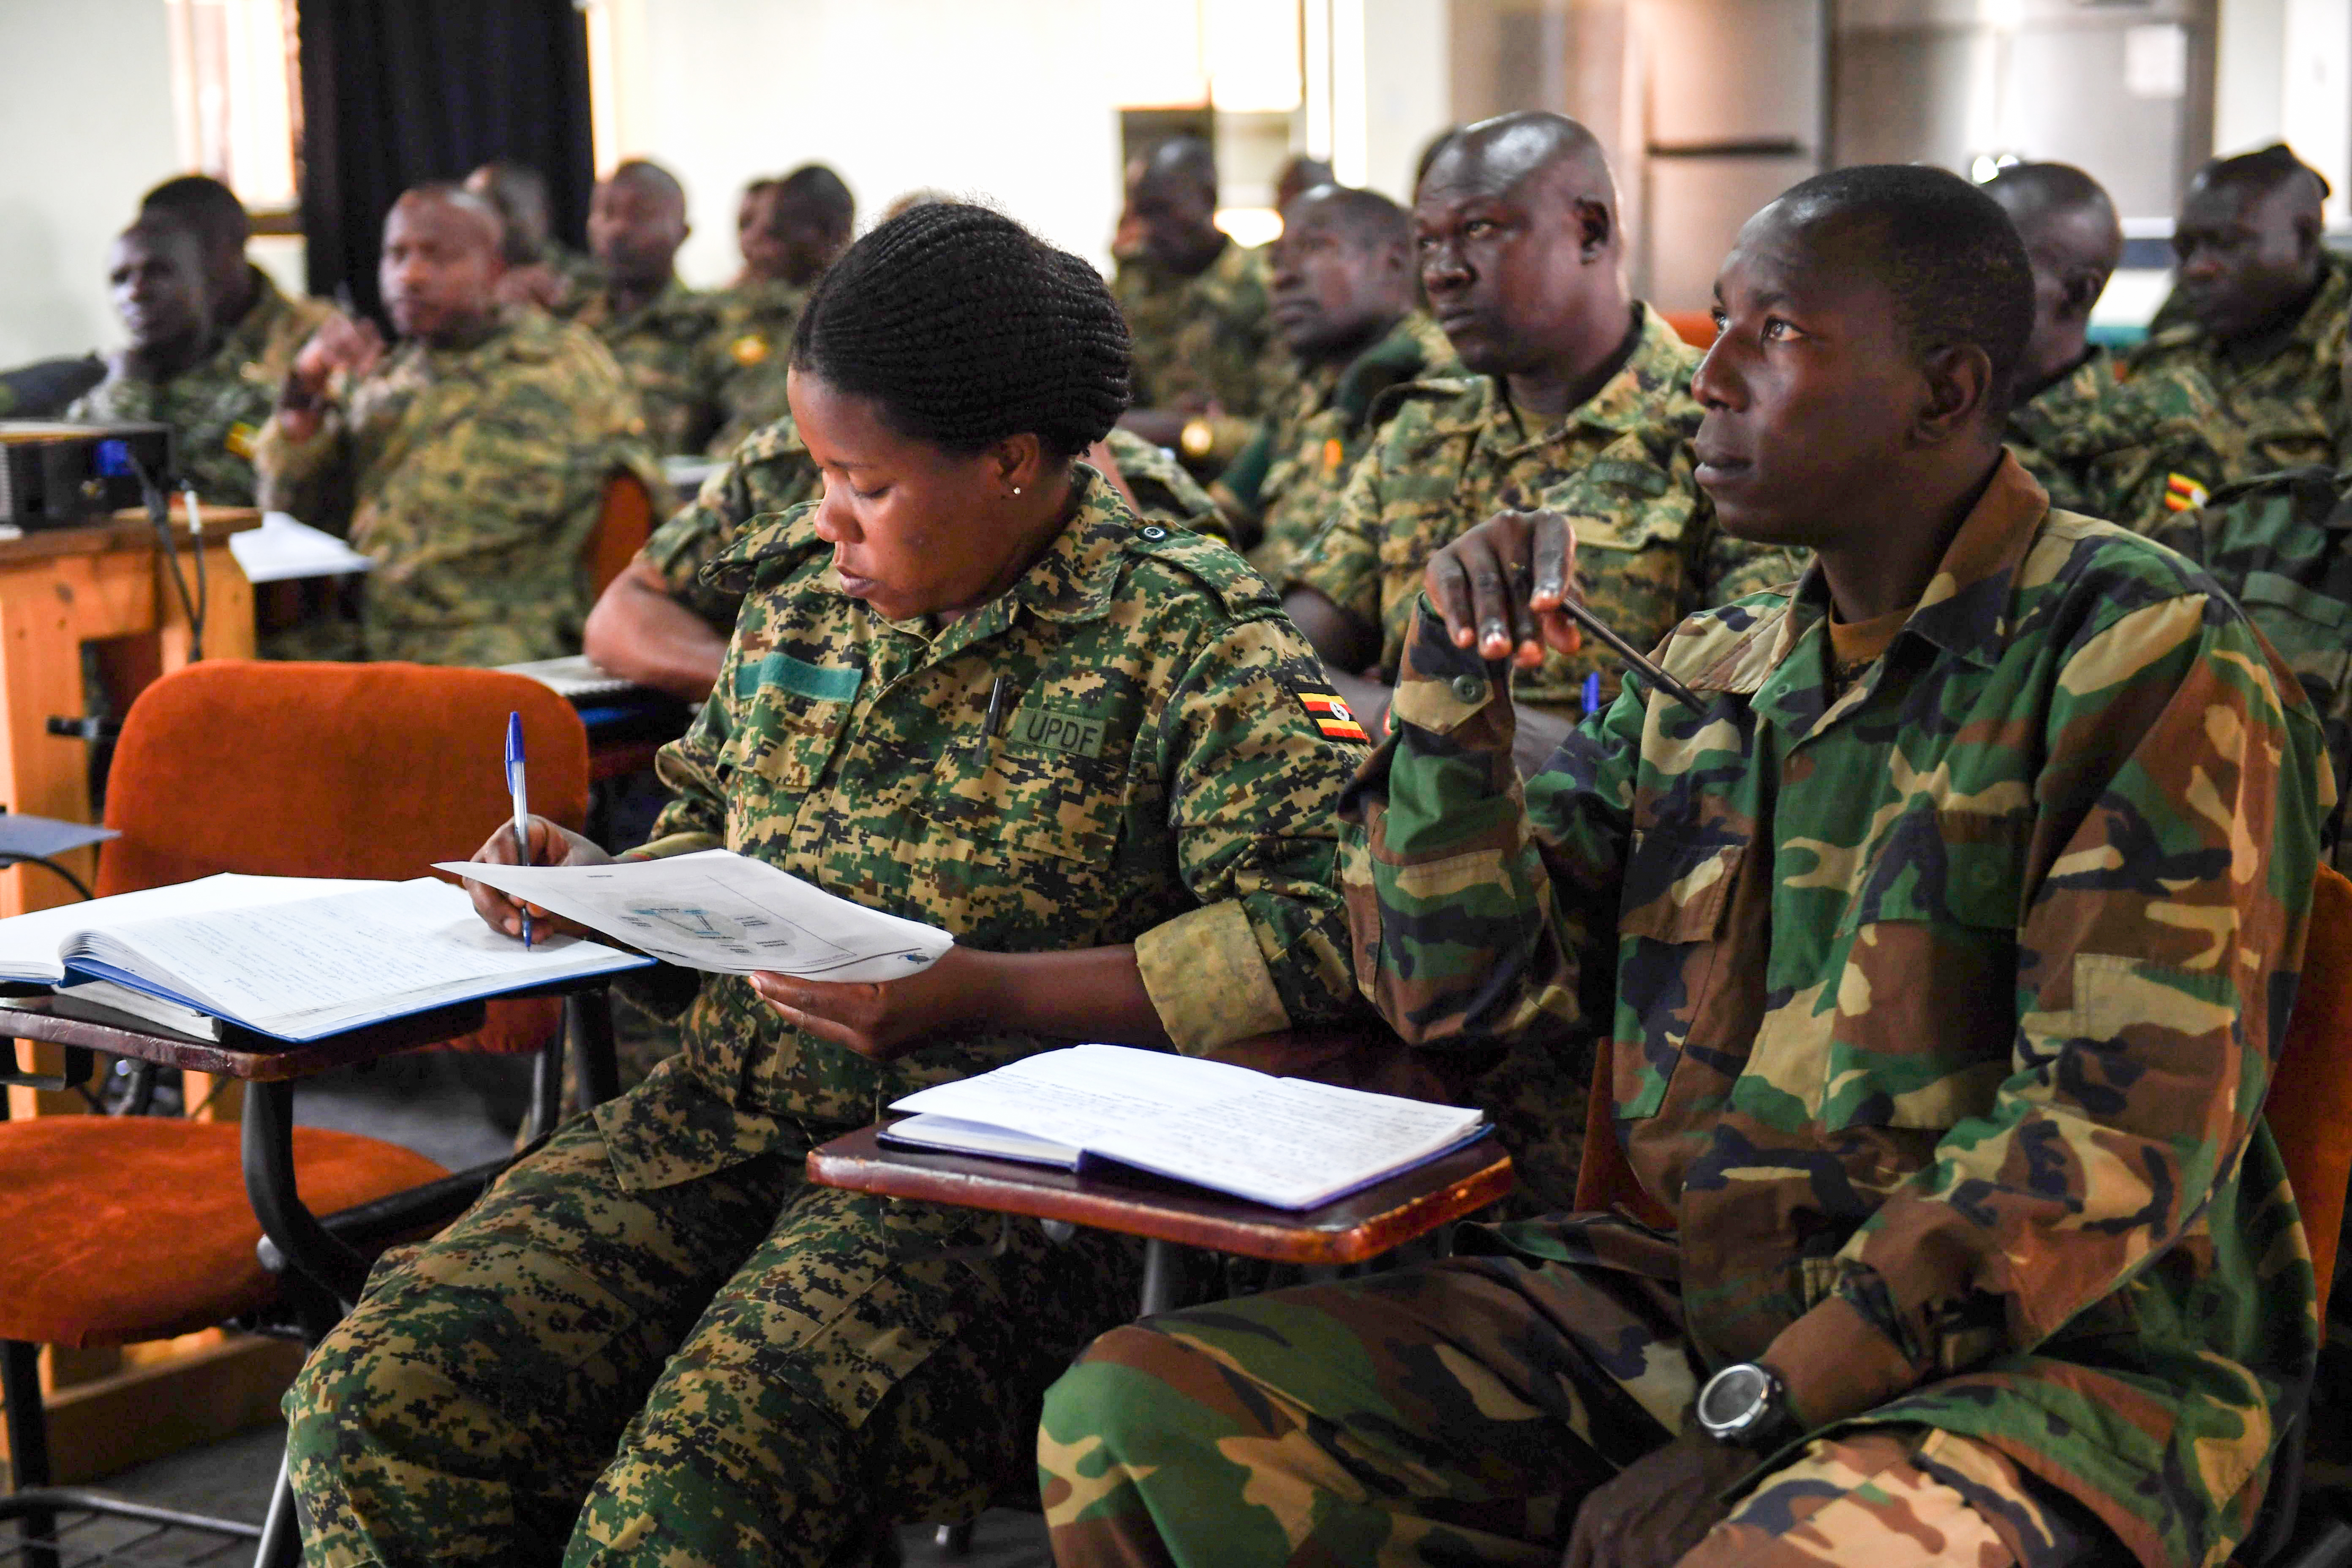 Uganda Peoples' Defence Force soldiers take notes during a training brief in Entebee, Uganda, July 11, 2018. The training is designed to enhance the UPDF's capability and capacity to support the African Union Mission in Somalia. (U.S. Air Force photo by Senior Airman Haley D. Phillips)